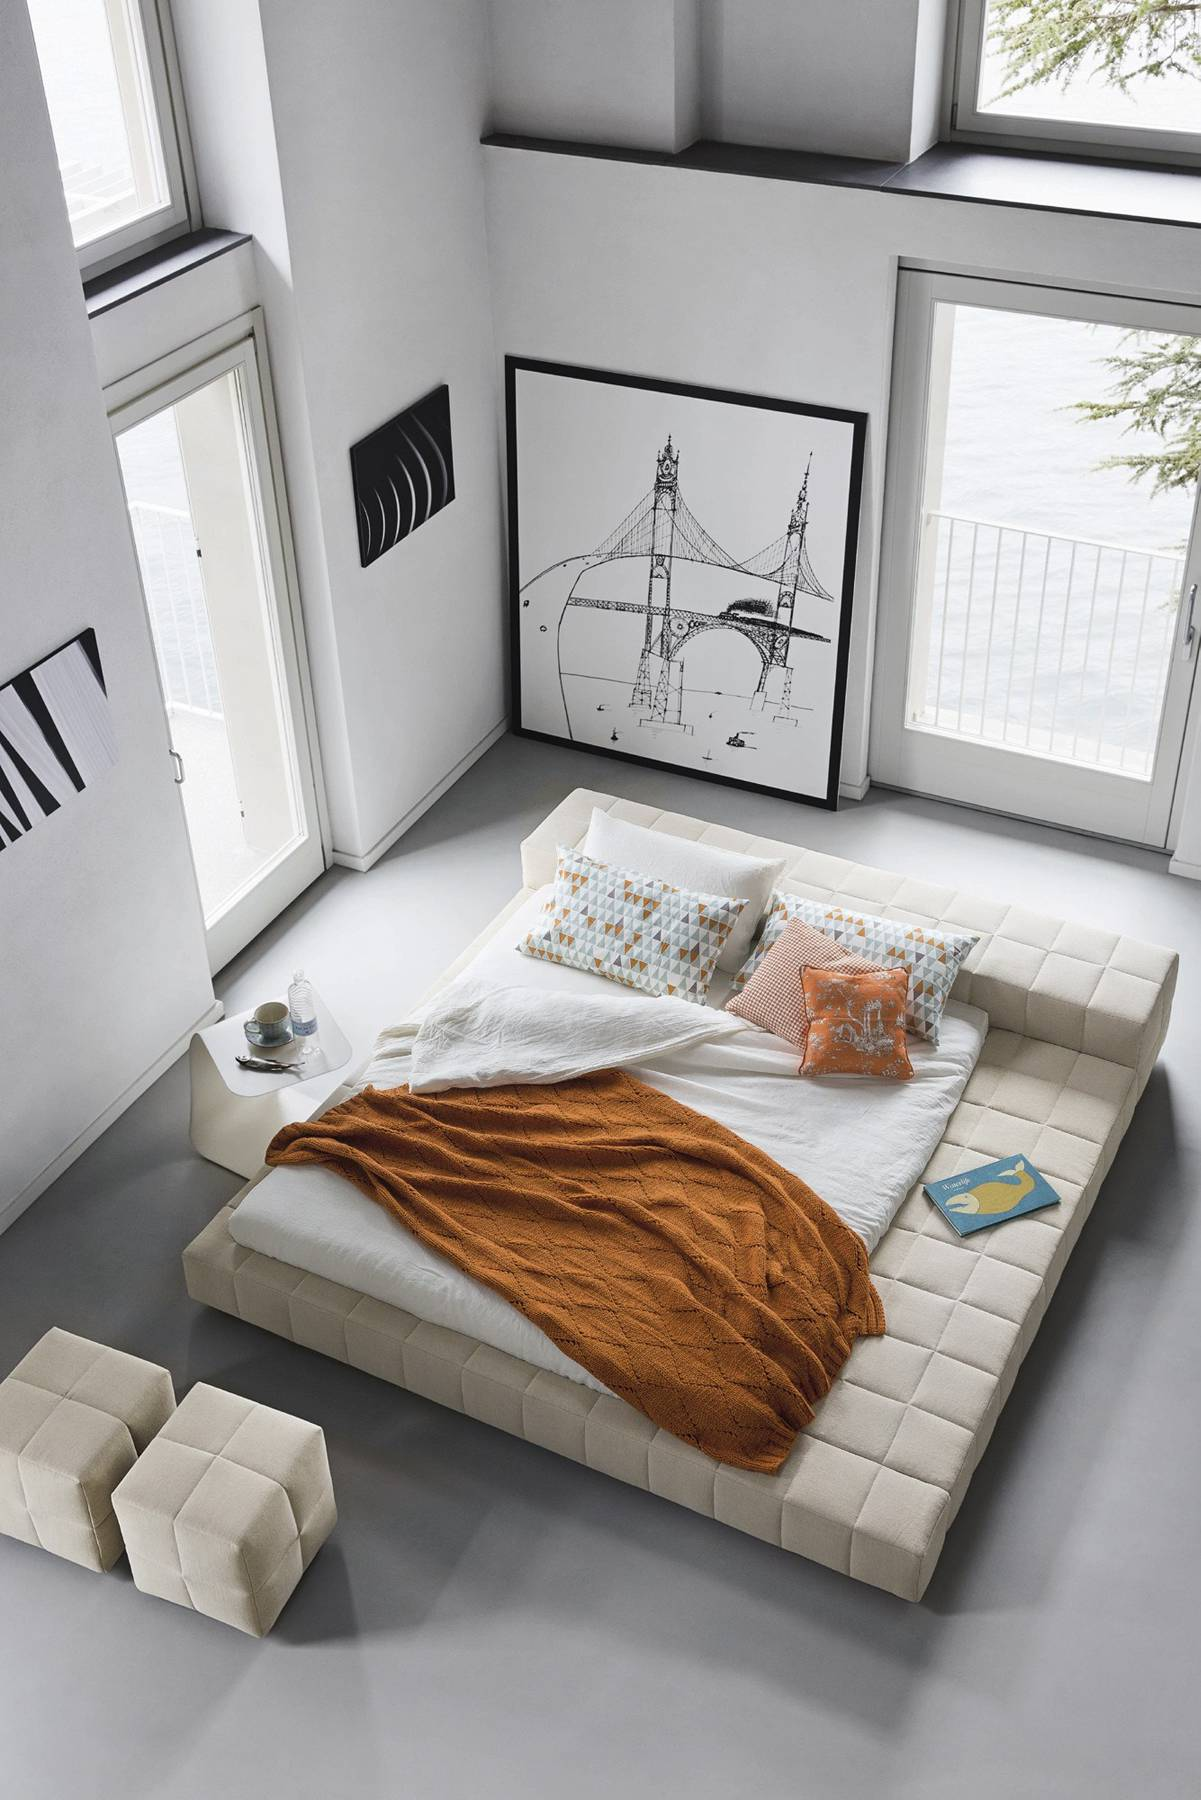 Aesthetic bed Charismatic Minimalist Bedroom Ideas That Low On Clutter But Big On Style